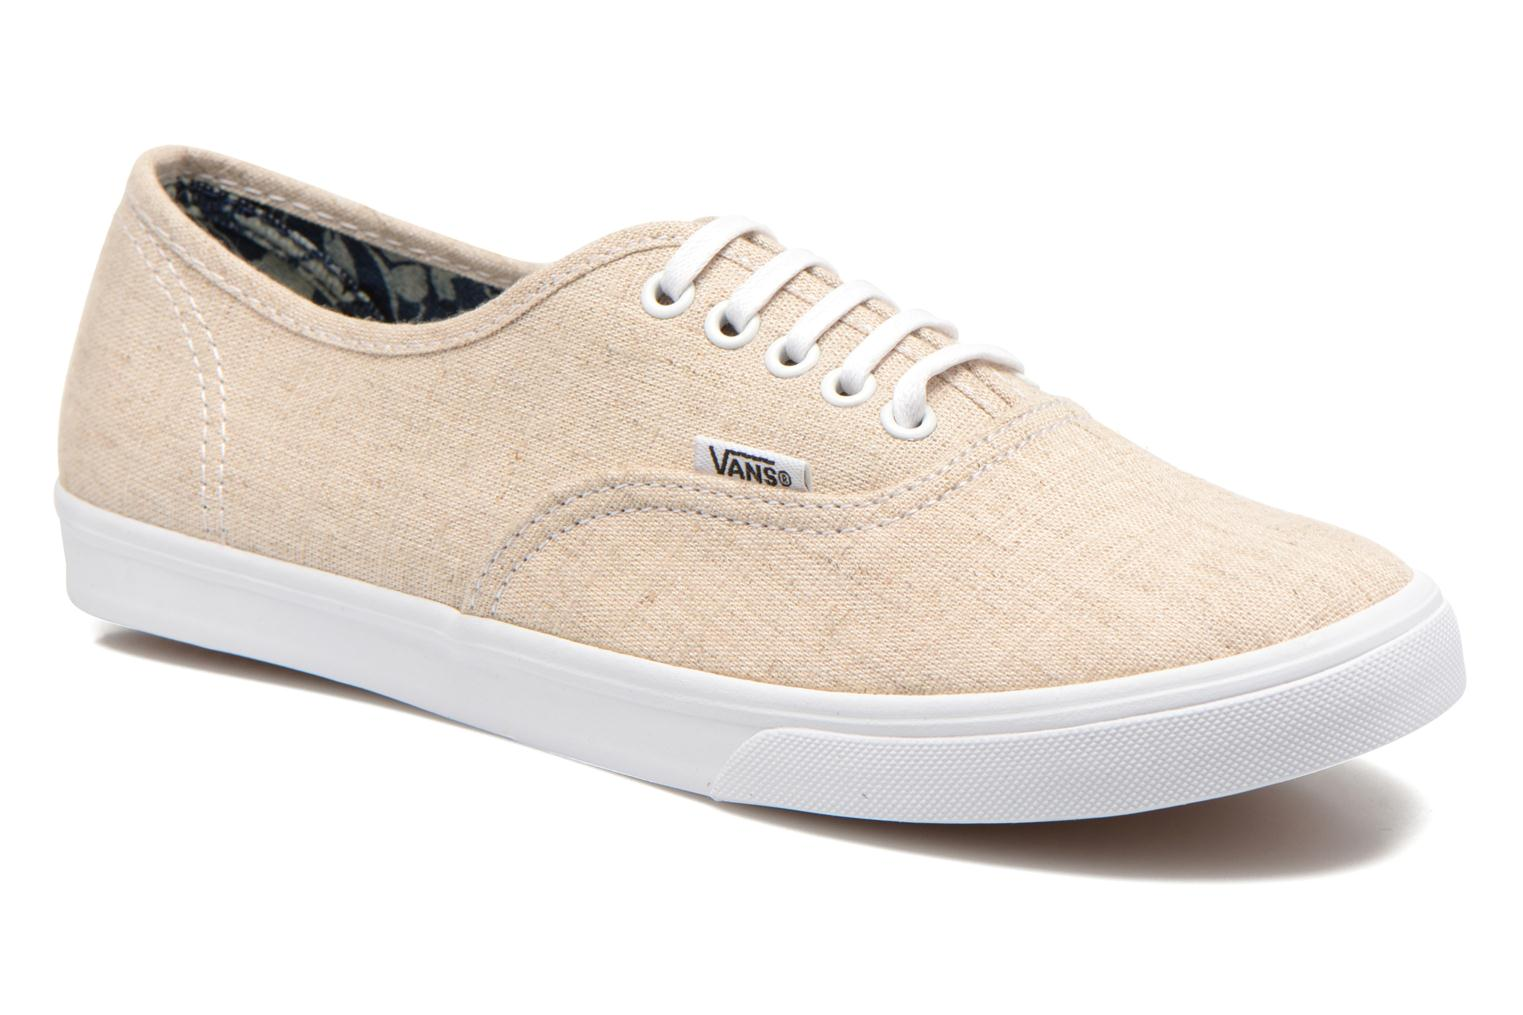 Authentic Lo Pro W (Indigo Tropical) naturaltrue white